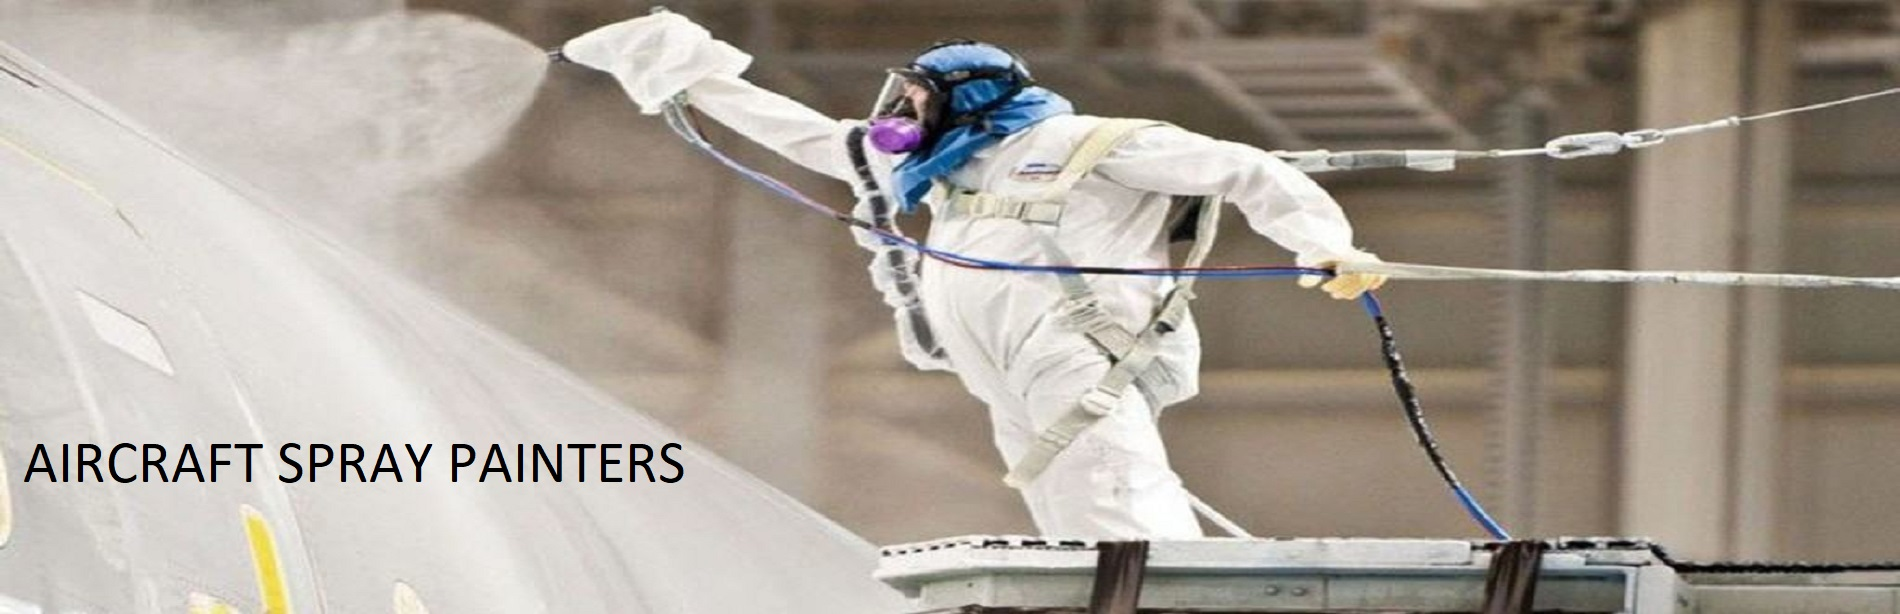 Aircraft Spray Painters